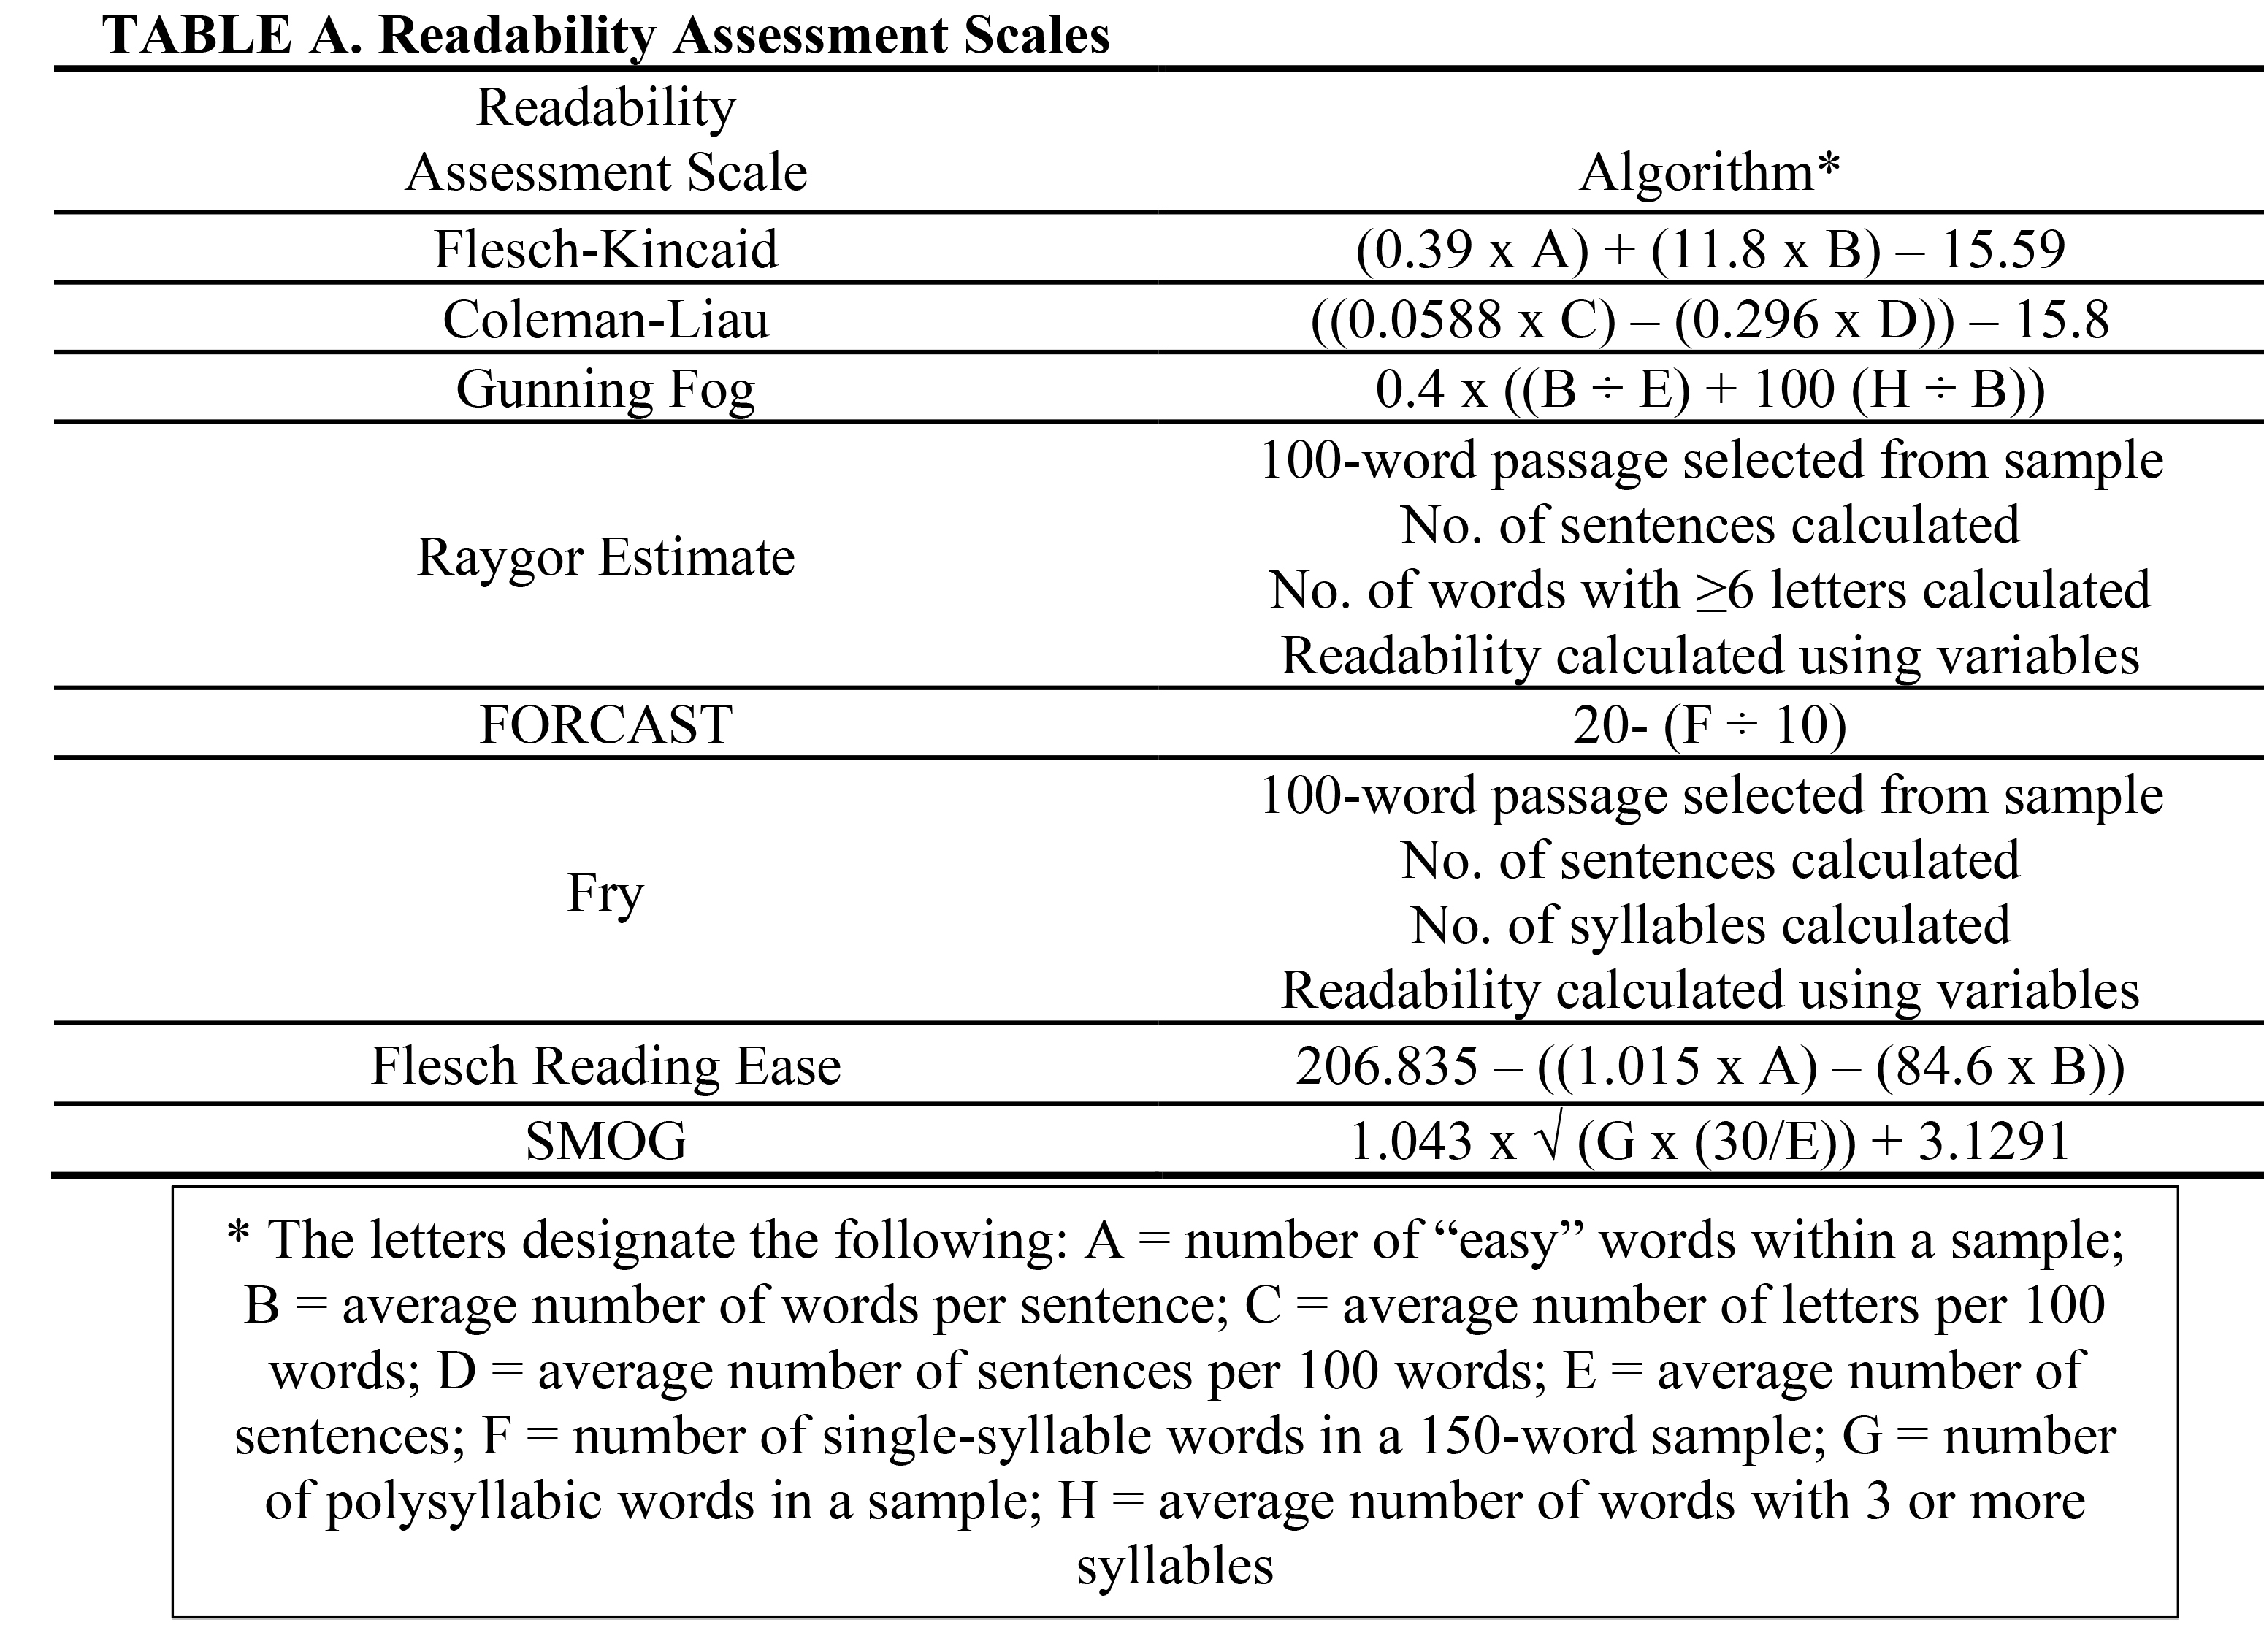 Readability Assessment Scales